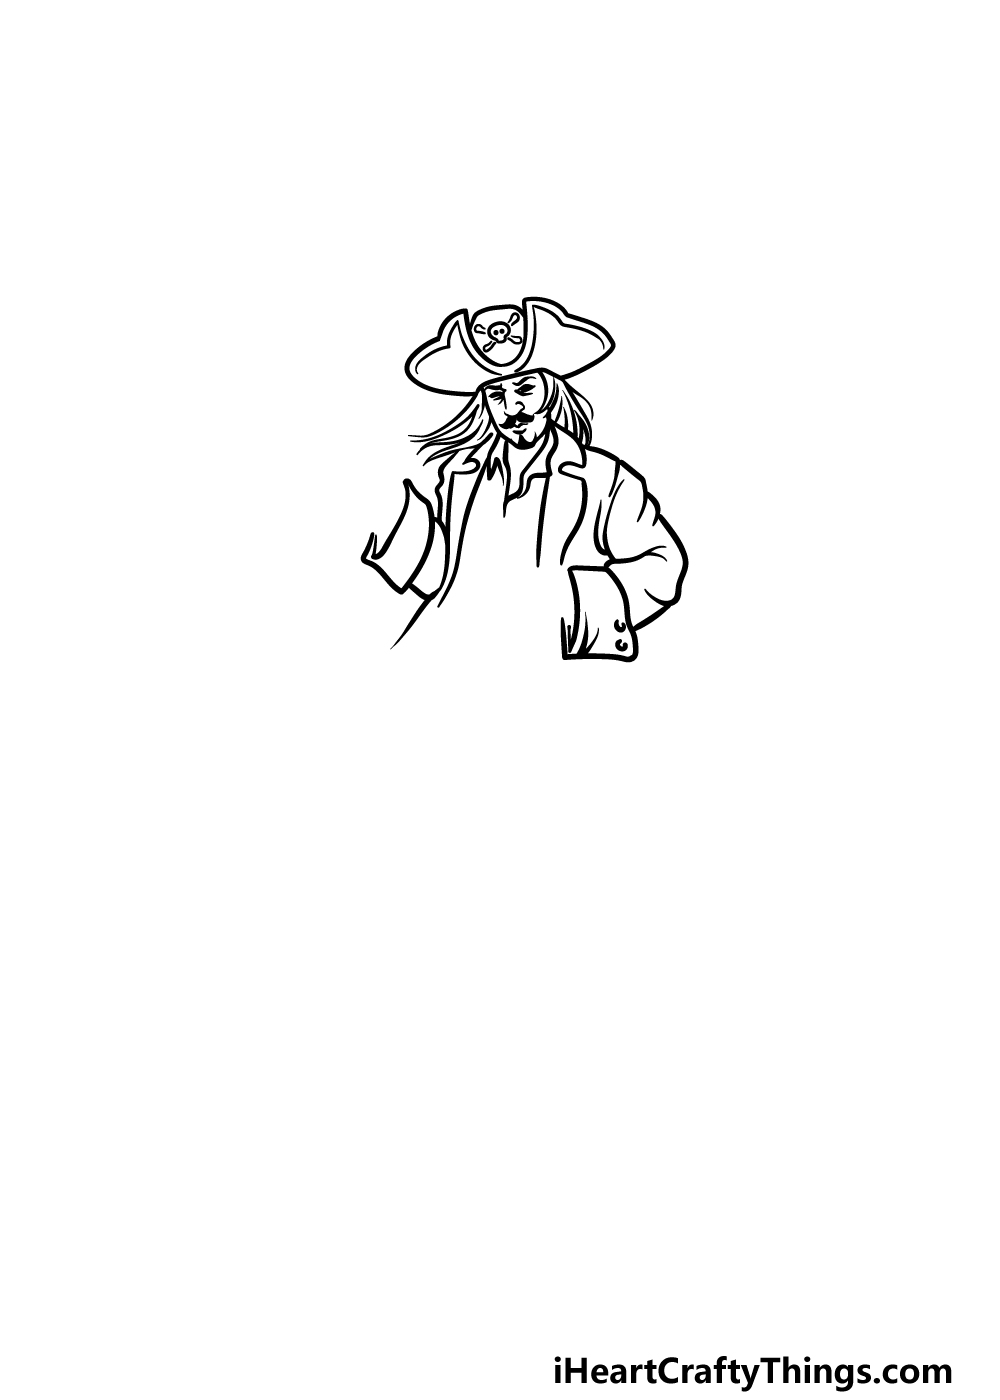 drawing a pirate step 3